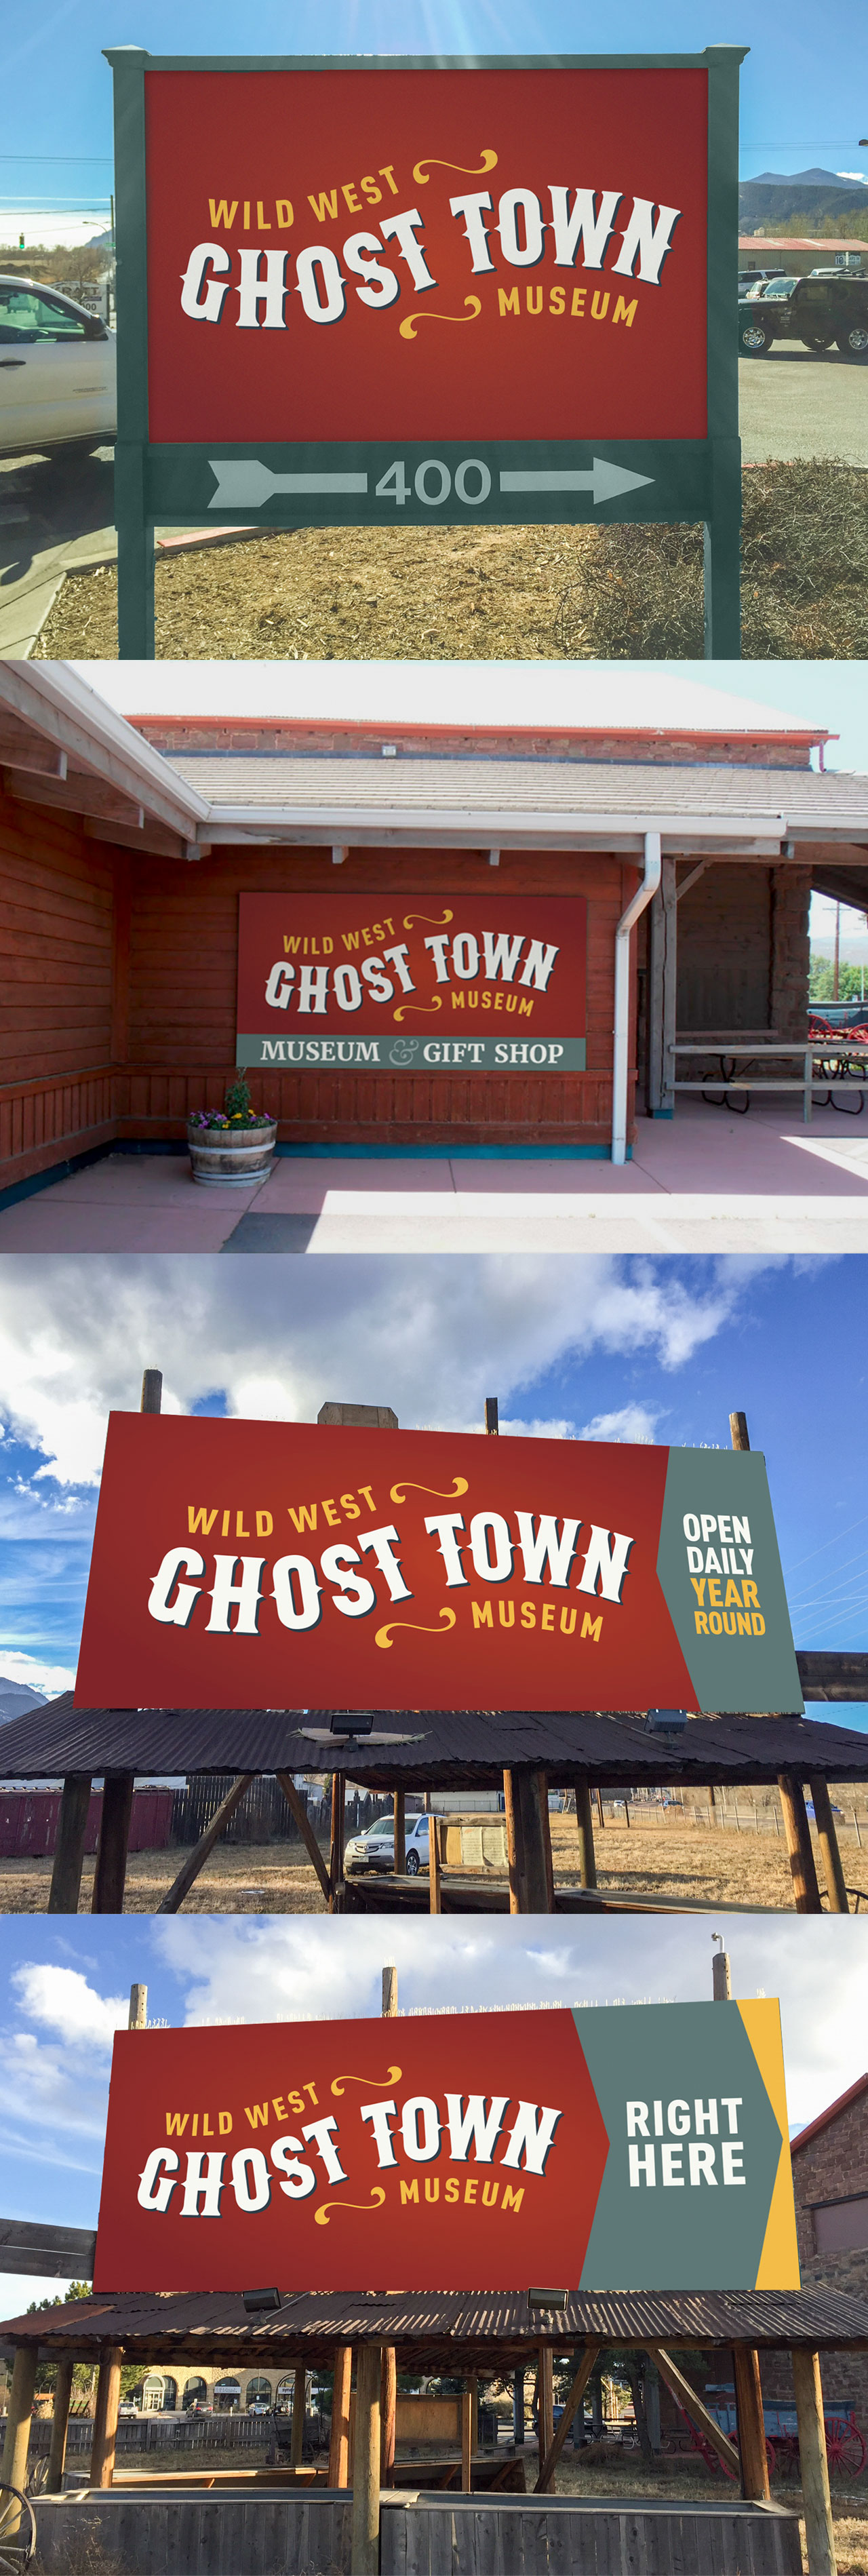 Ghost Town Museum rebrand web design billboard design signage Kettle Fire Creative rebrand Rebrand + Web DesignGhost Town Museum ghost town billboards